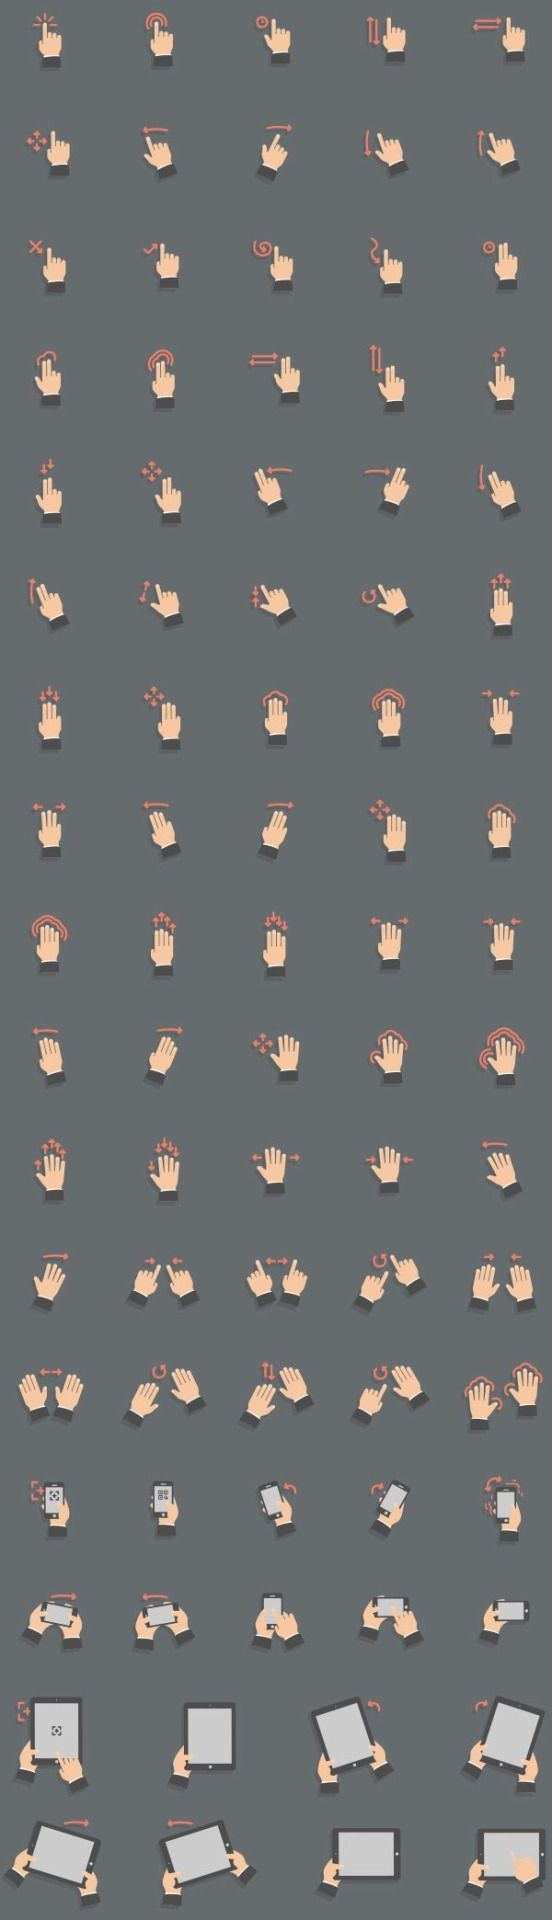 Every touch gesture you could ever want.